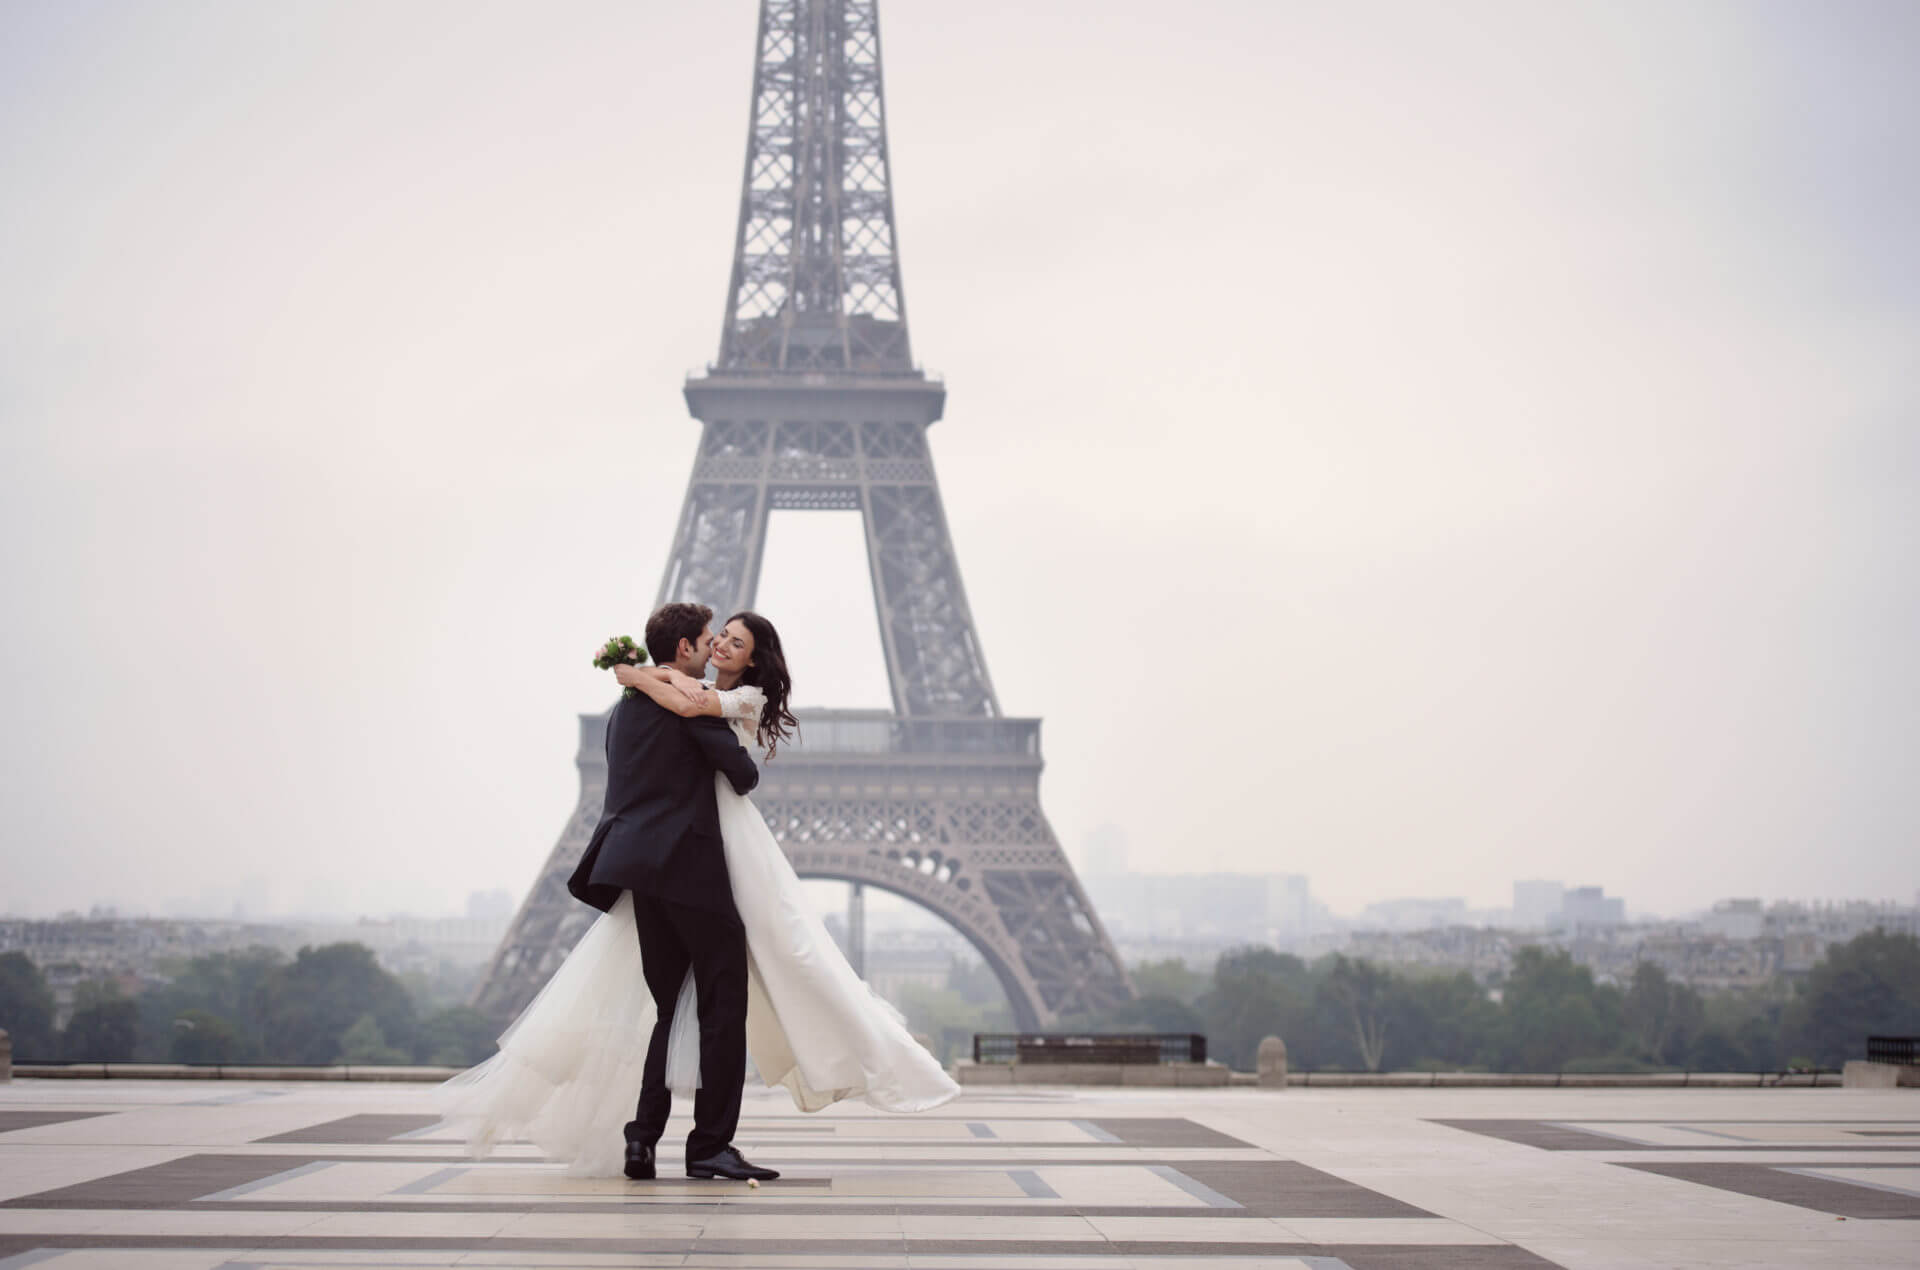 Destination wedding planner Paris - Your Weddings & Events